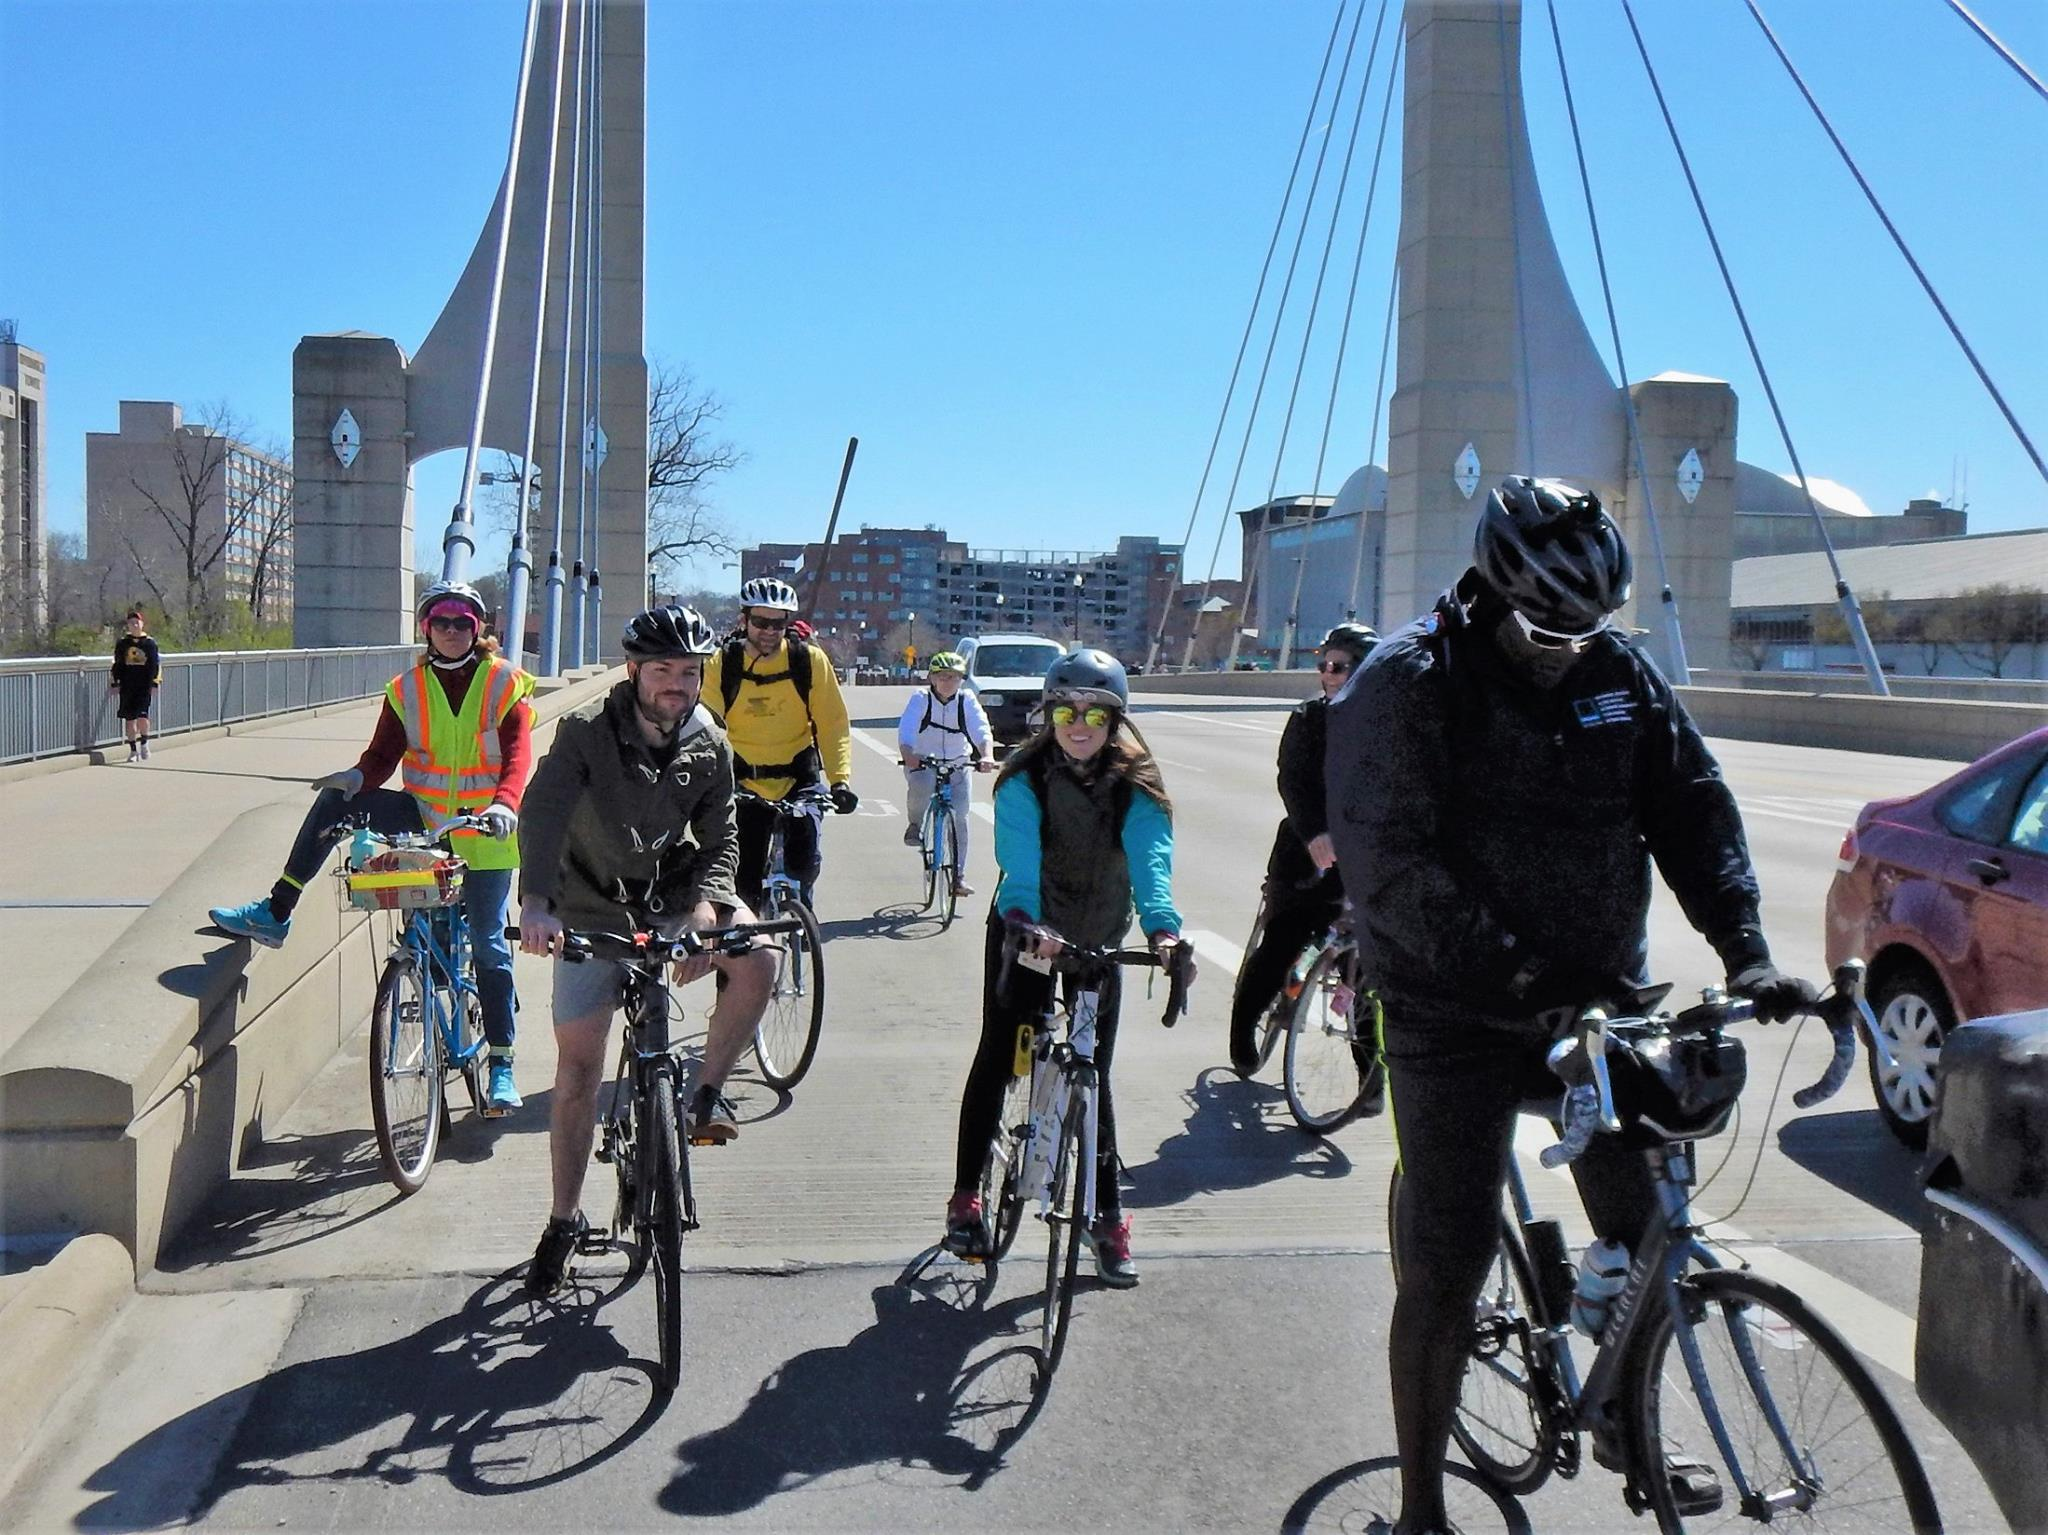 Riding the Lane Ave bridge on a beautiful day. Photo credit: Keith 'Lugs' Mayton